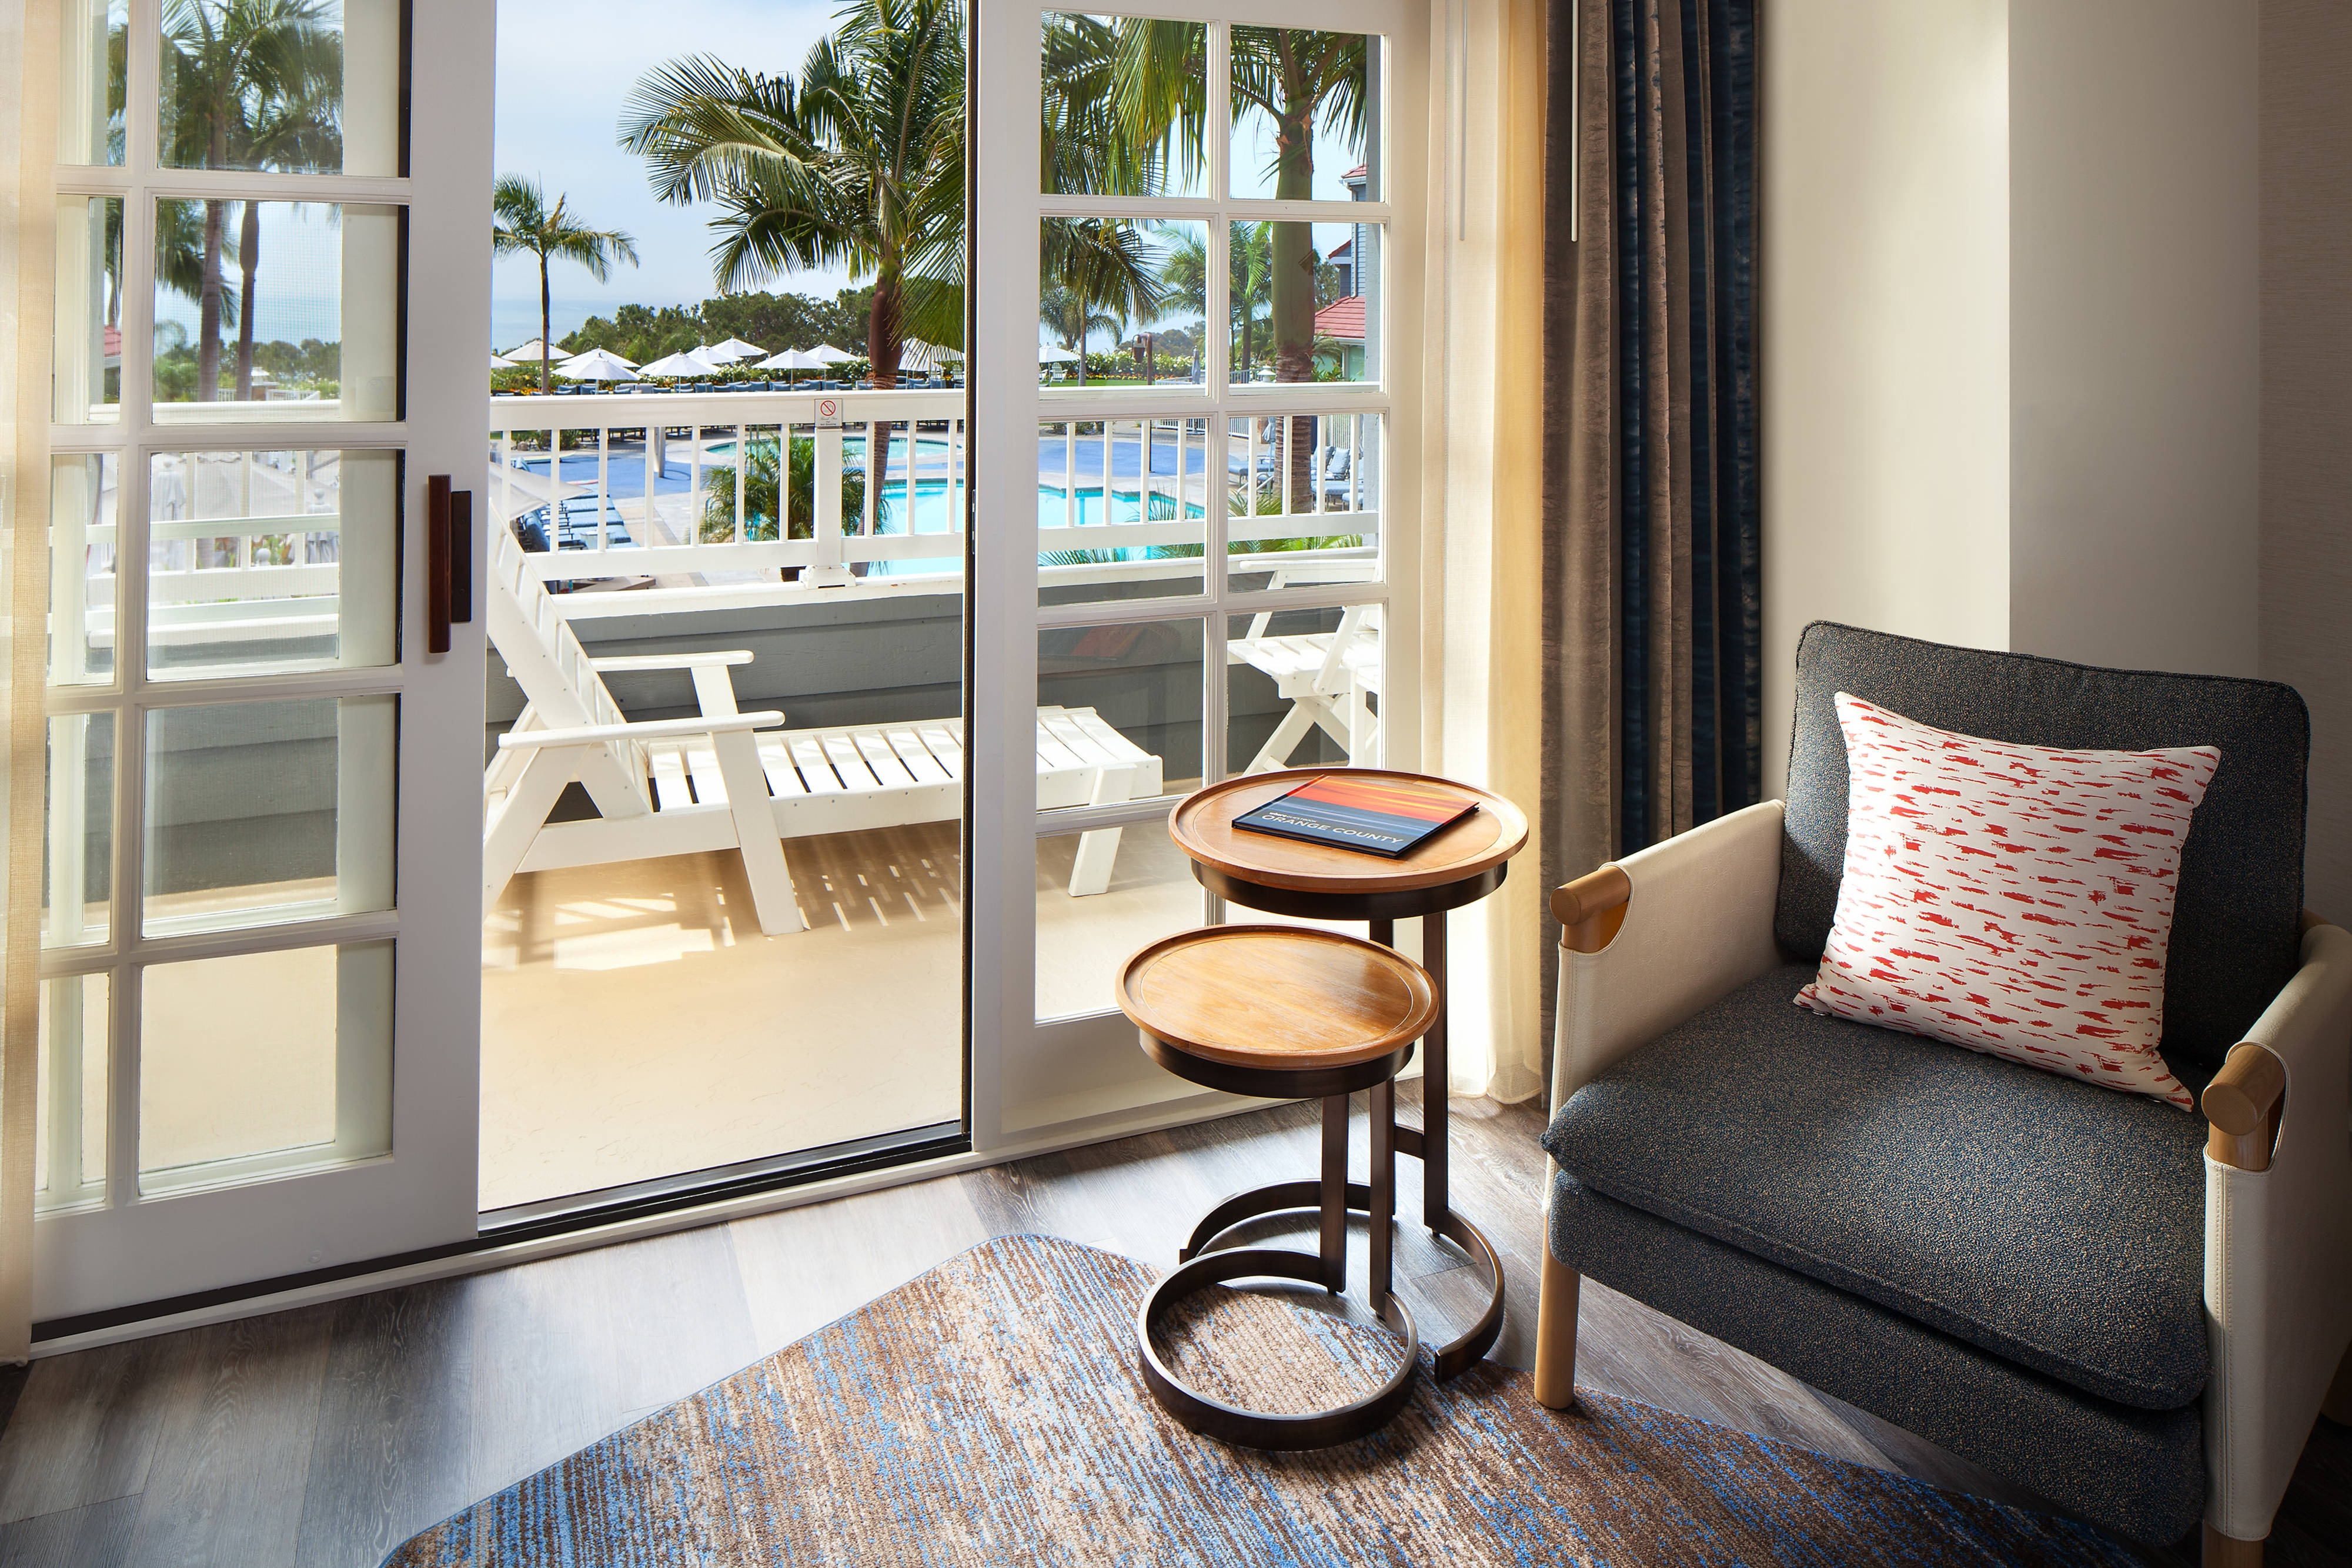 Pool View Guest Room - View